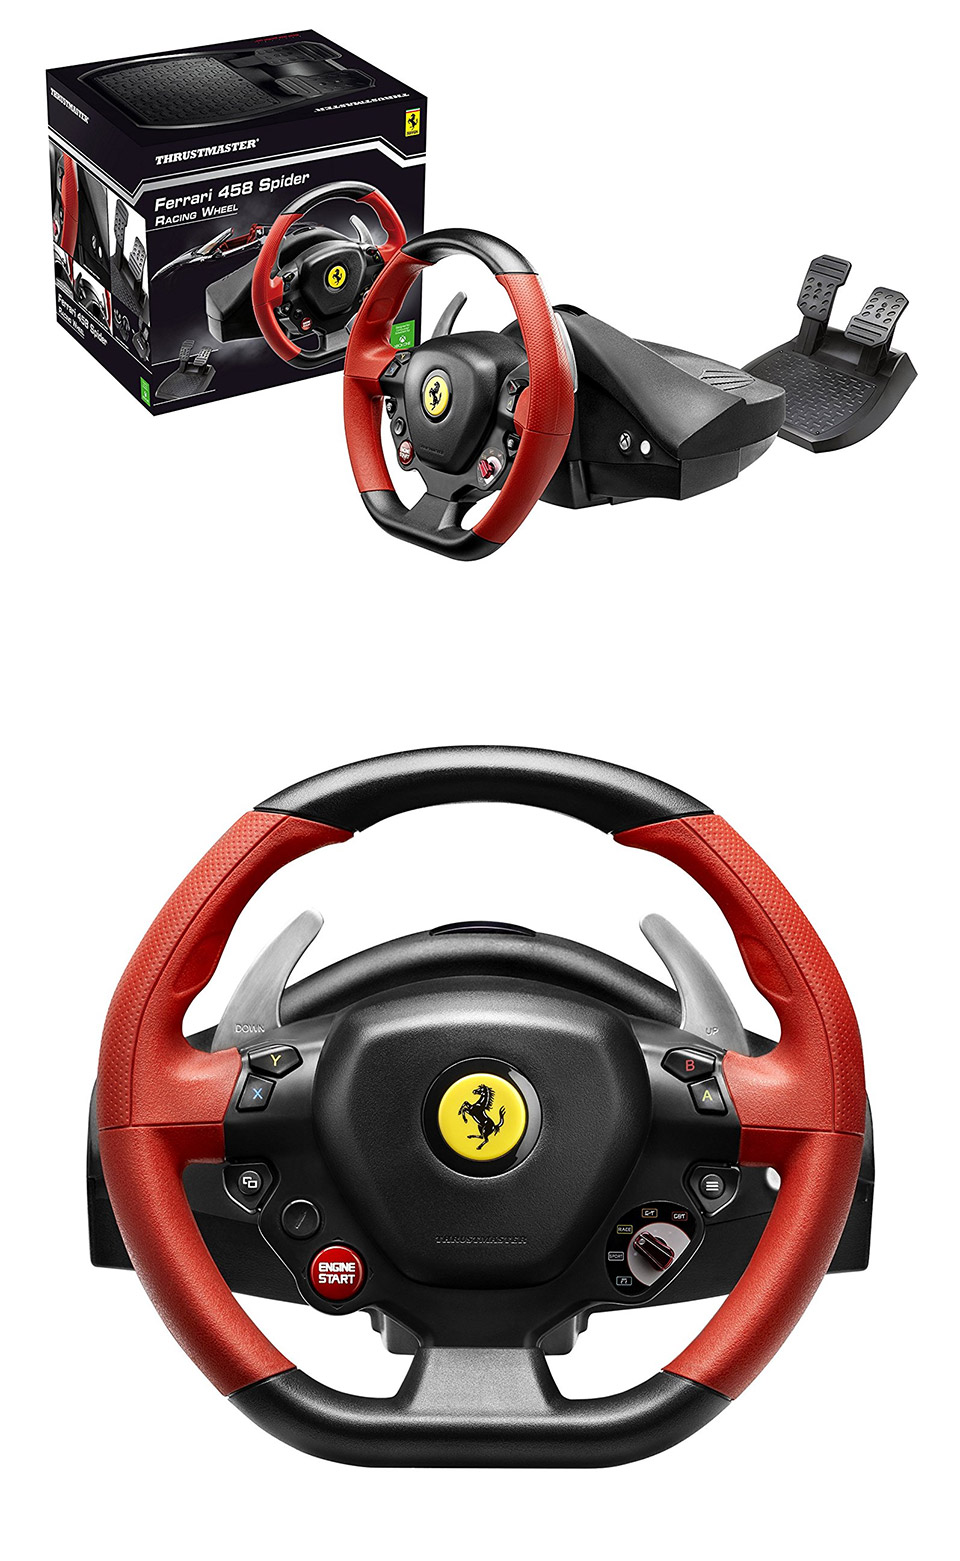 new thrustmaster ferrari 458 spider racing wheel for xbox. Black Bedroom Furniture Sets. Home Design Ideas